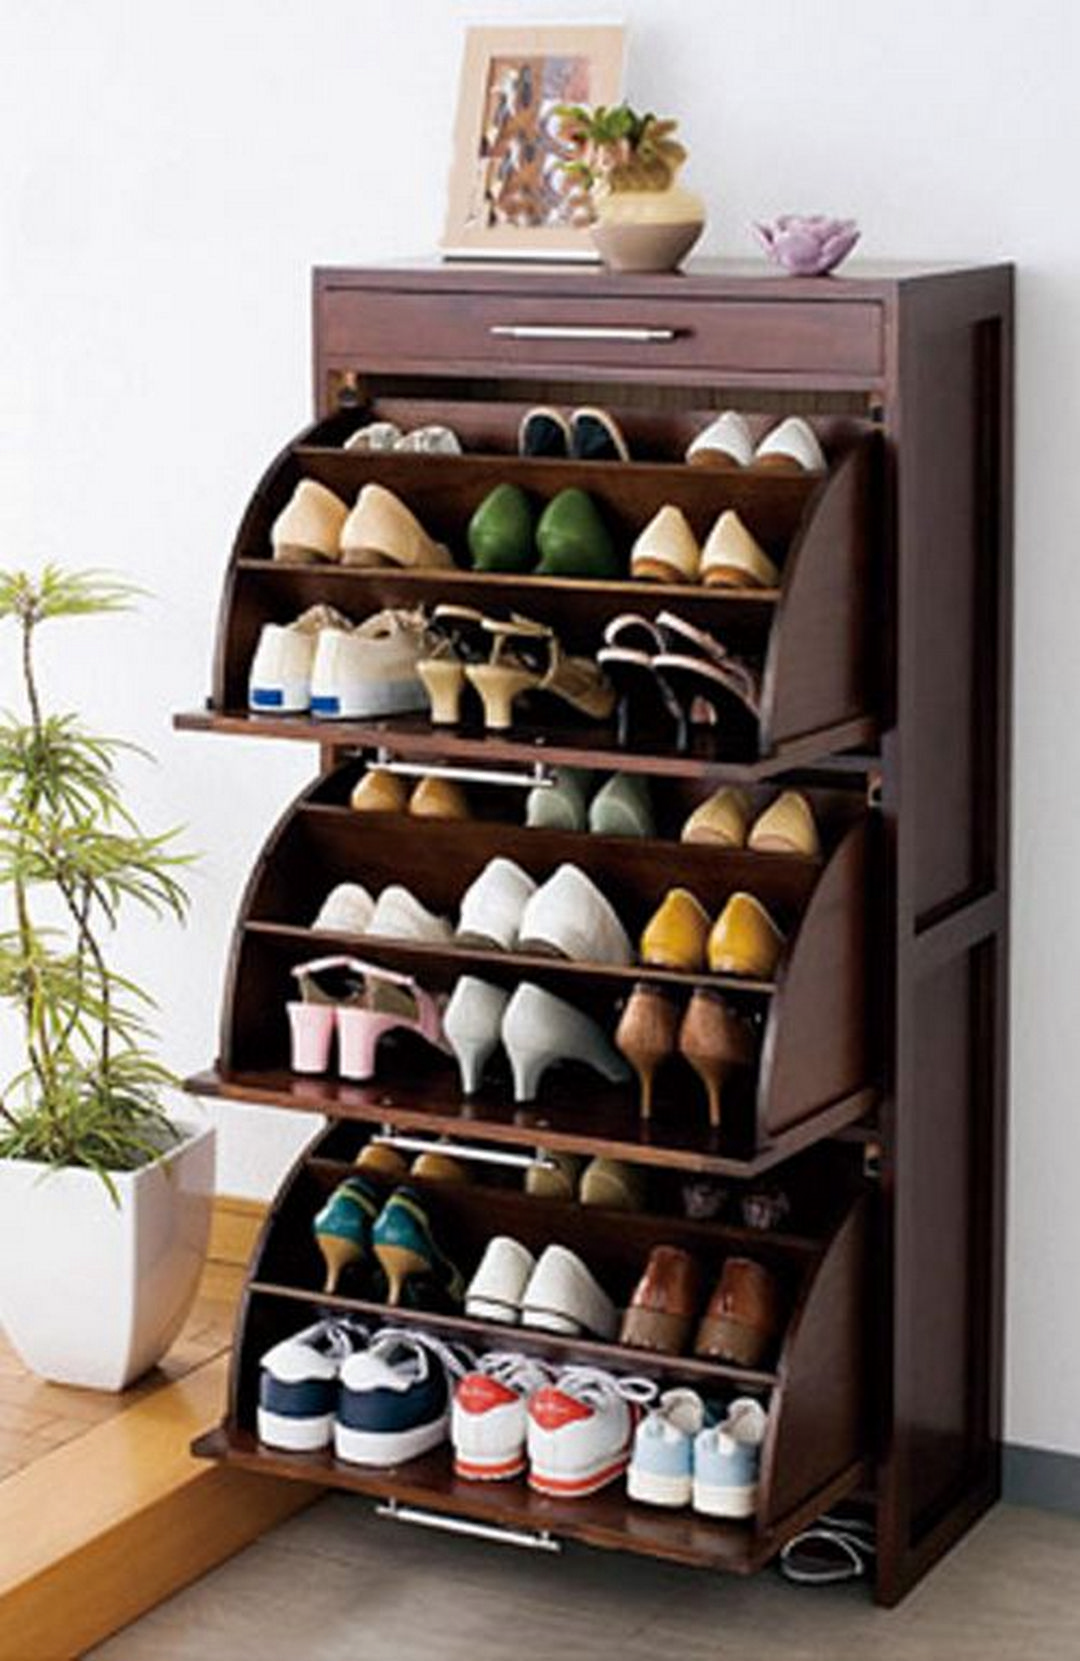 Mudroom Shoe Racks: Pictures, Options, Tips and Ideas | HGTV